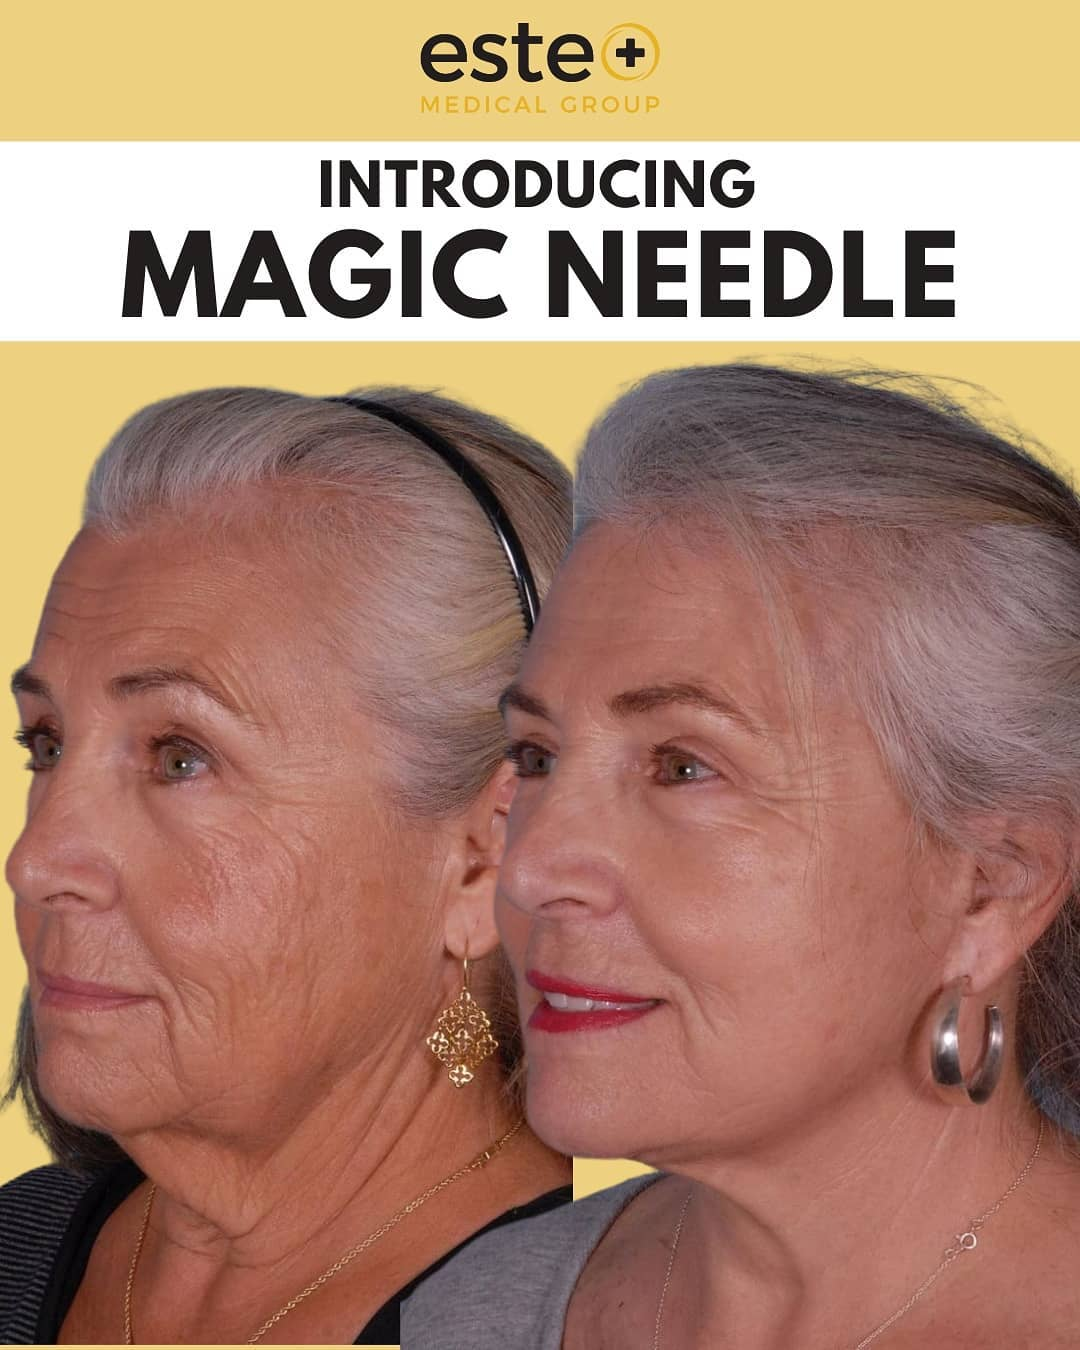 The EXCLUSIVE Magic Needle